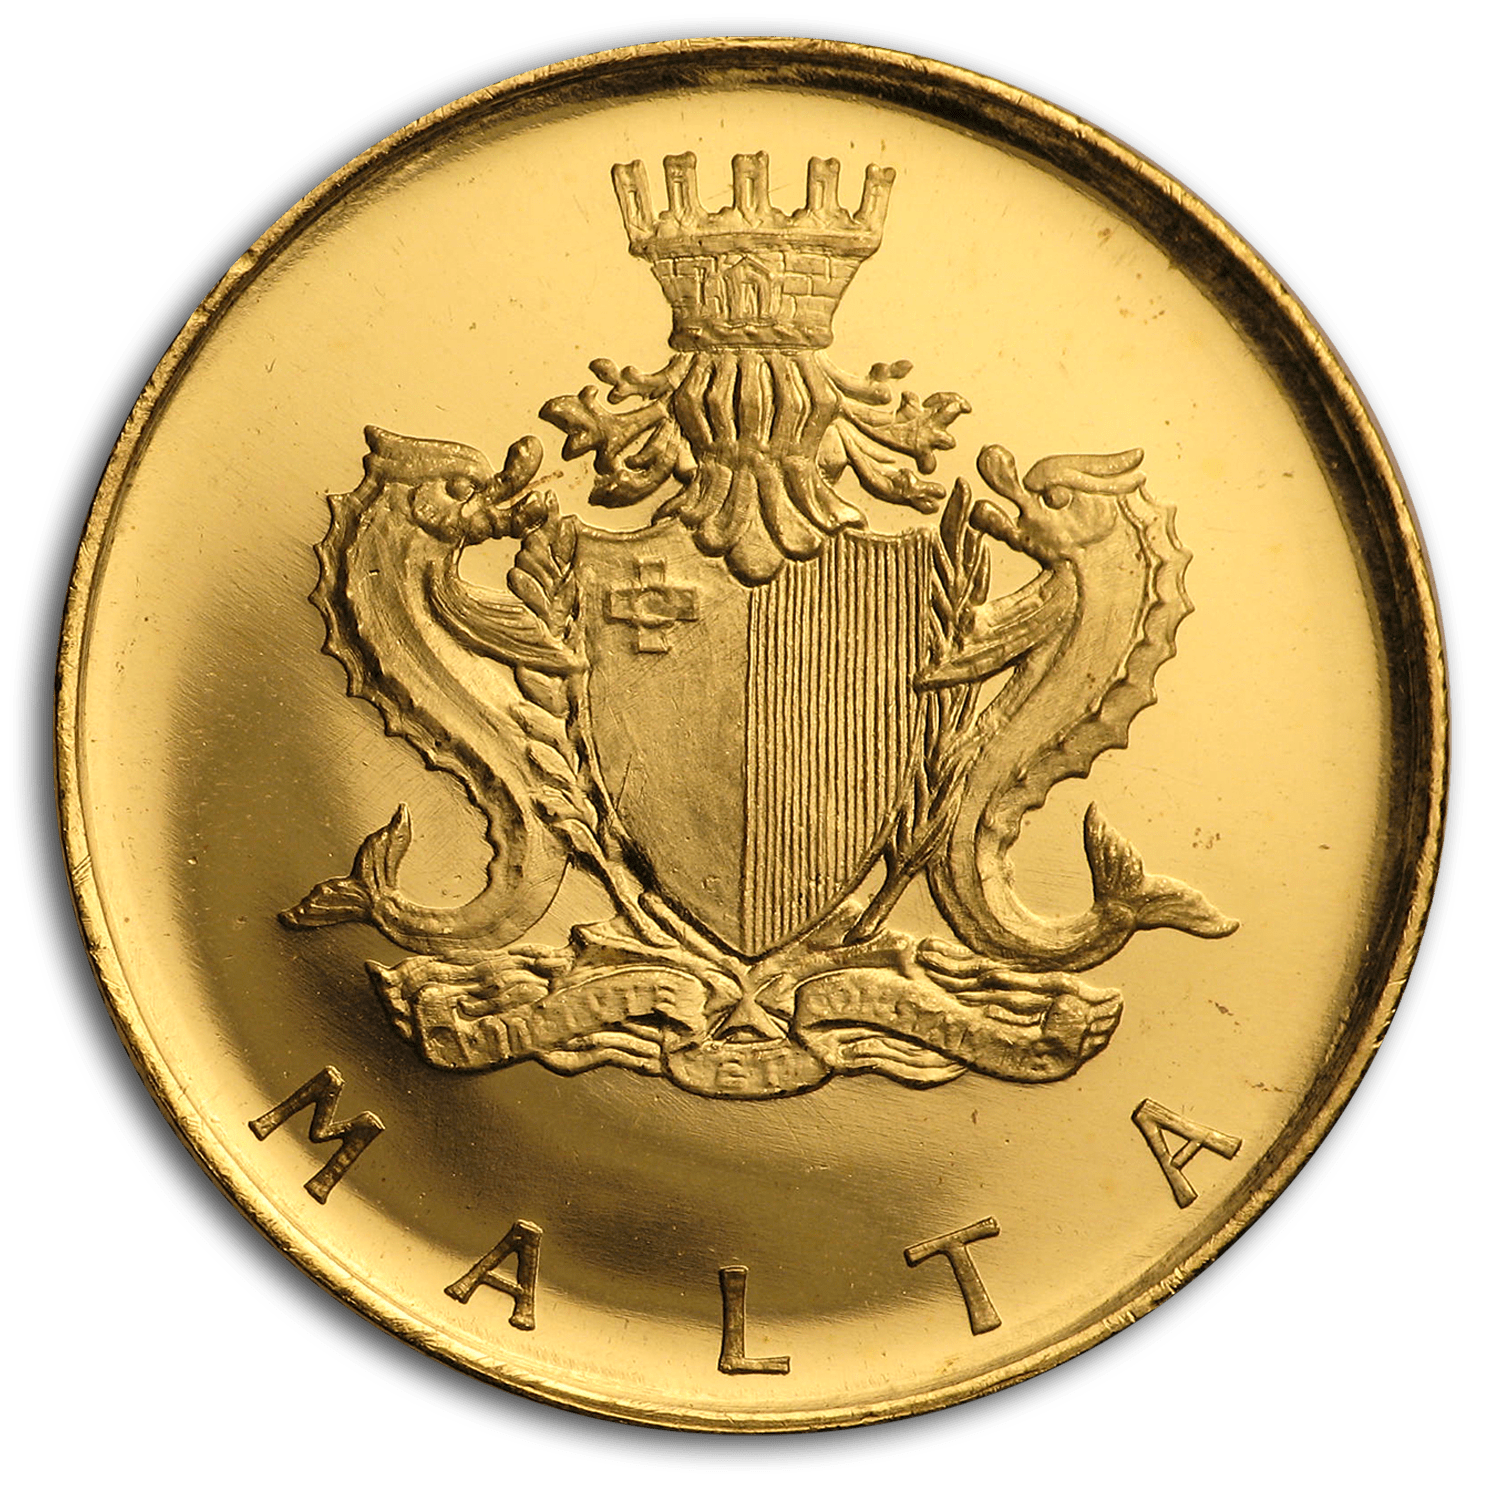 1974 Malta Gold 20 Pounds Gozo Boat BU Coin For Sale | Gold Coins from Malta | APMEX Not Specified